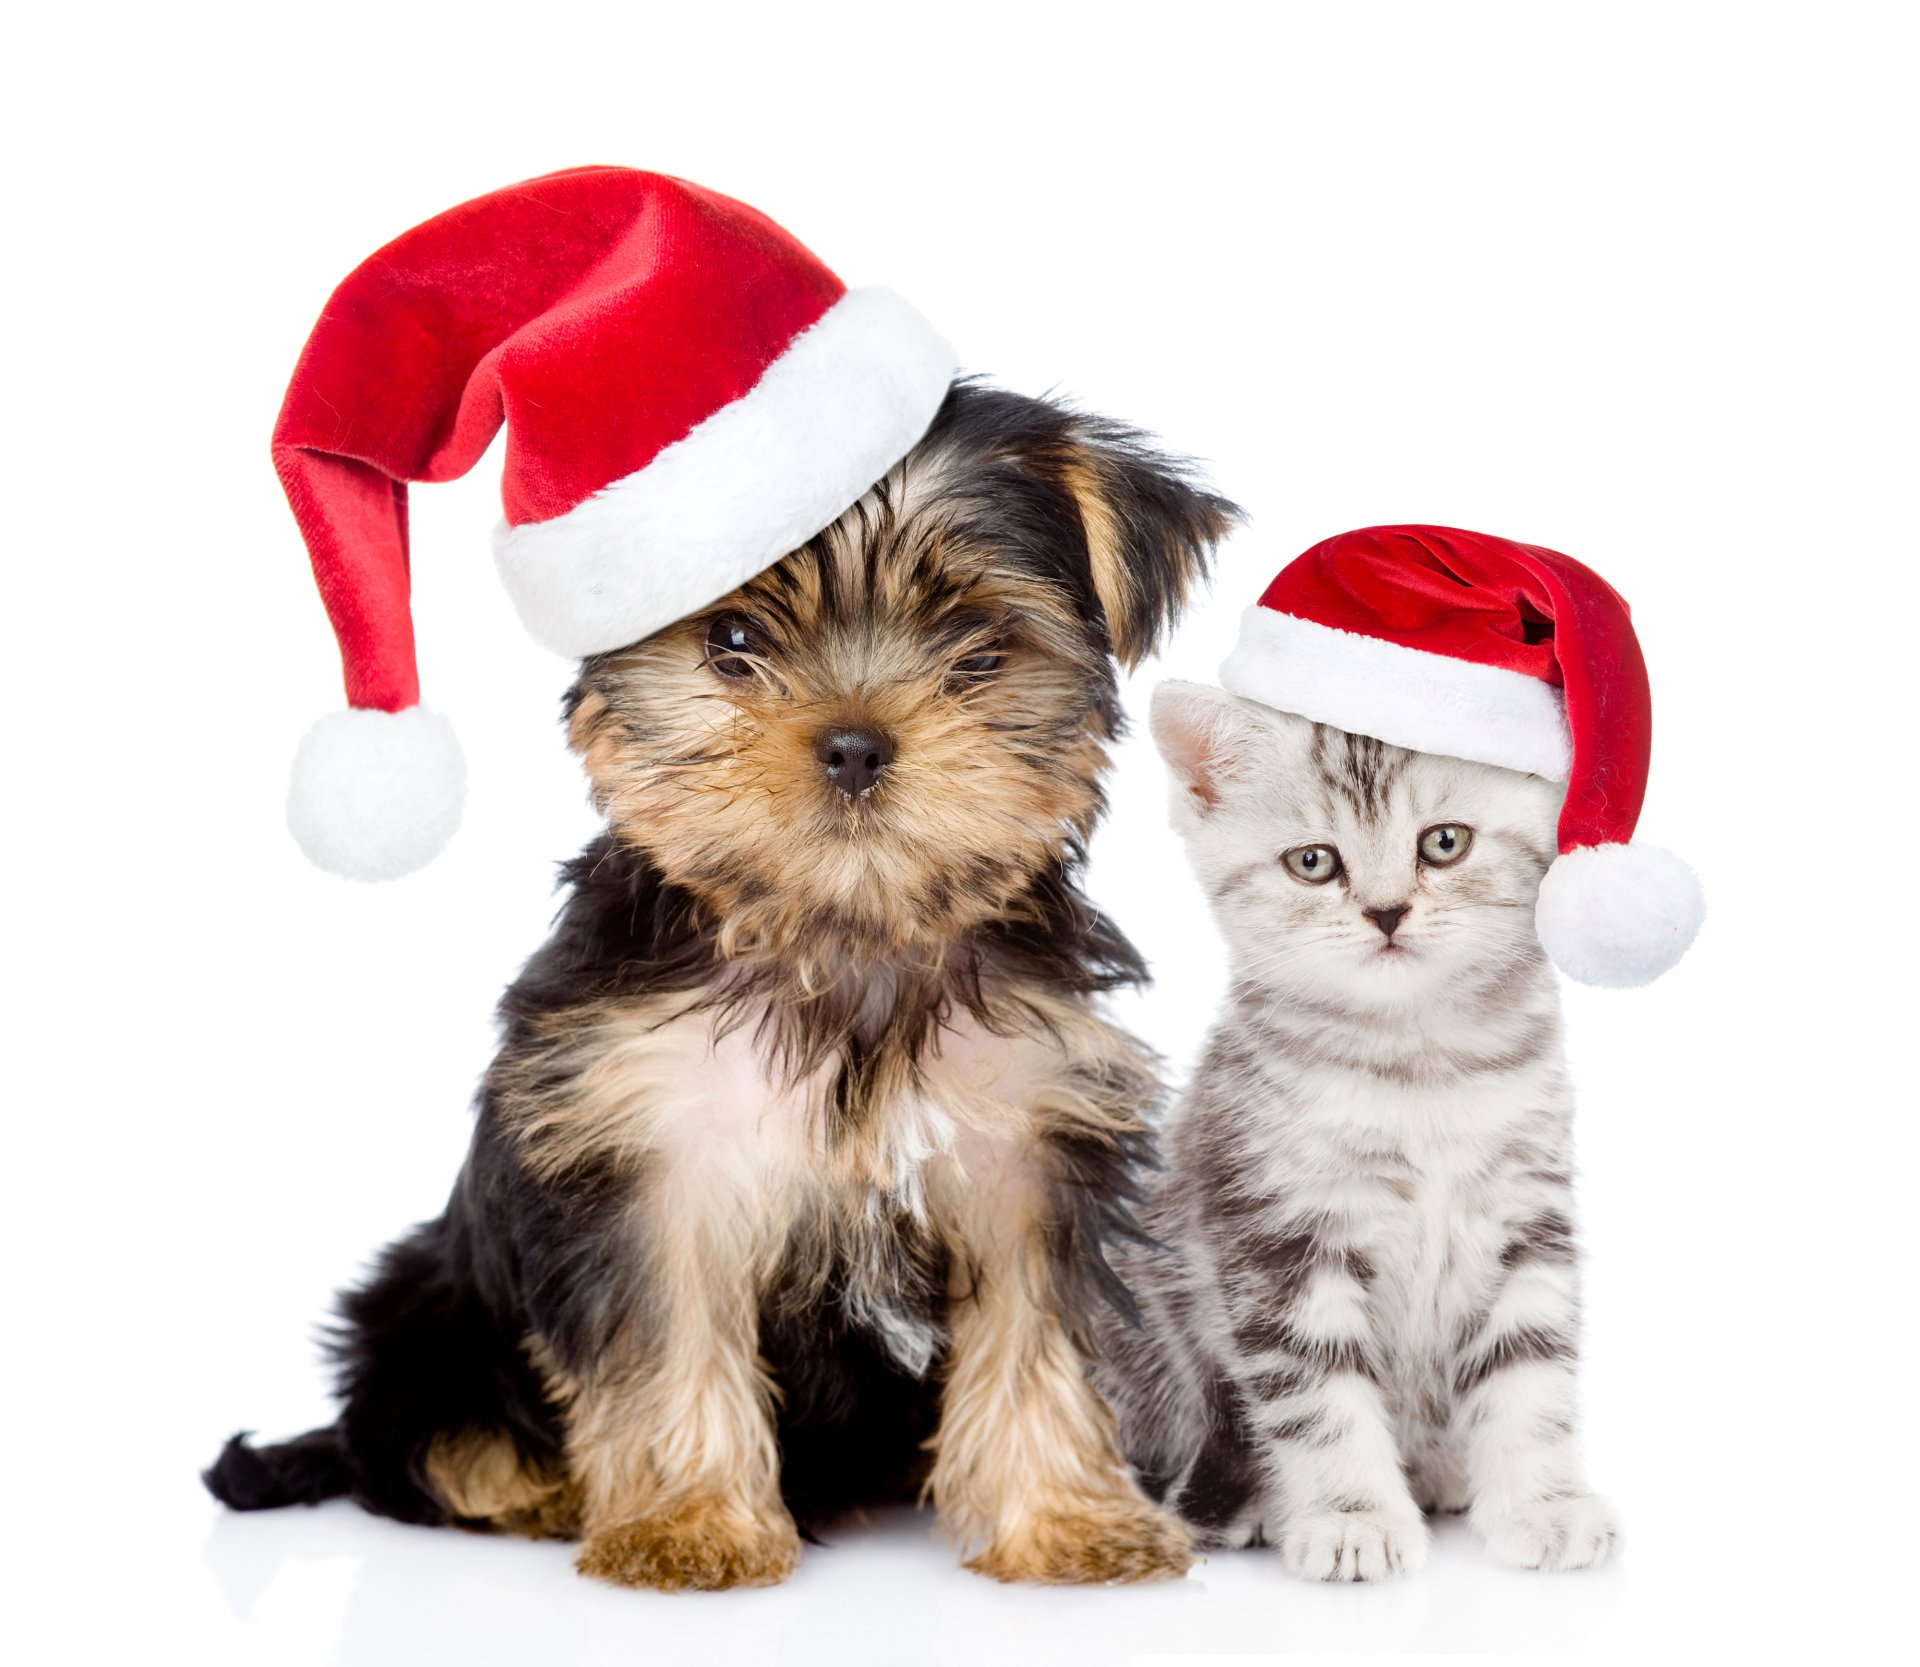 Puppy And Kitten With Santa Hats 4k Ultra HD Fond Dcran